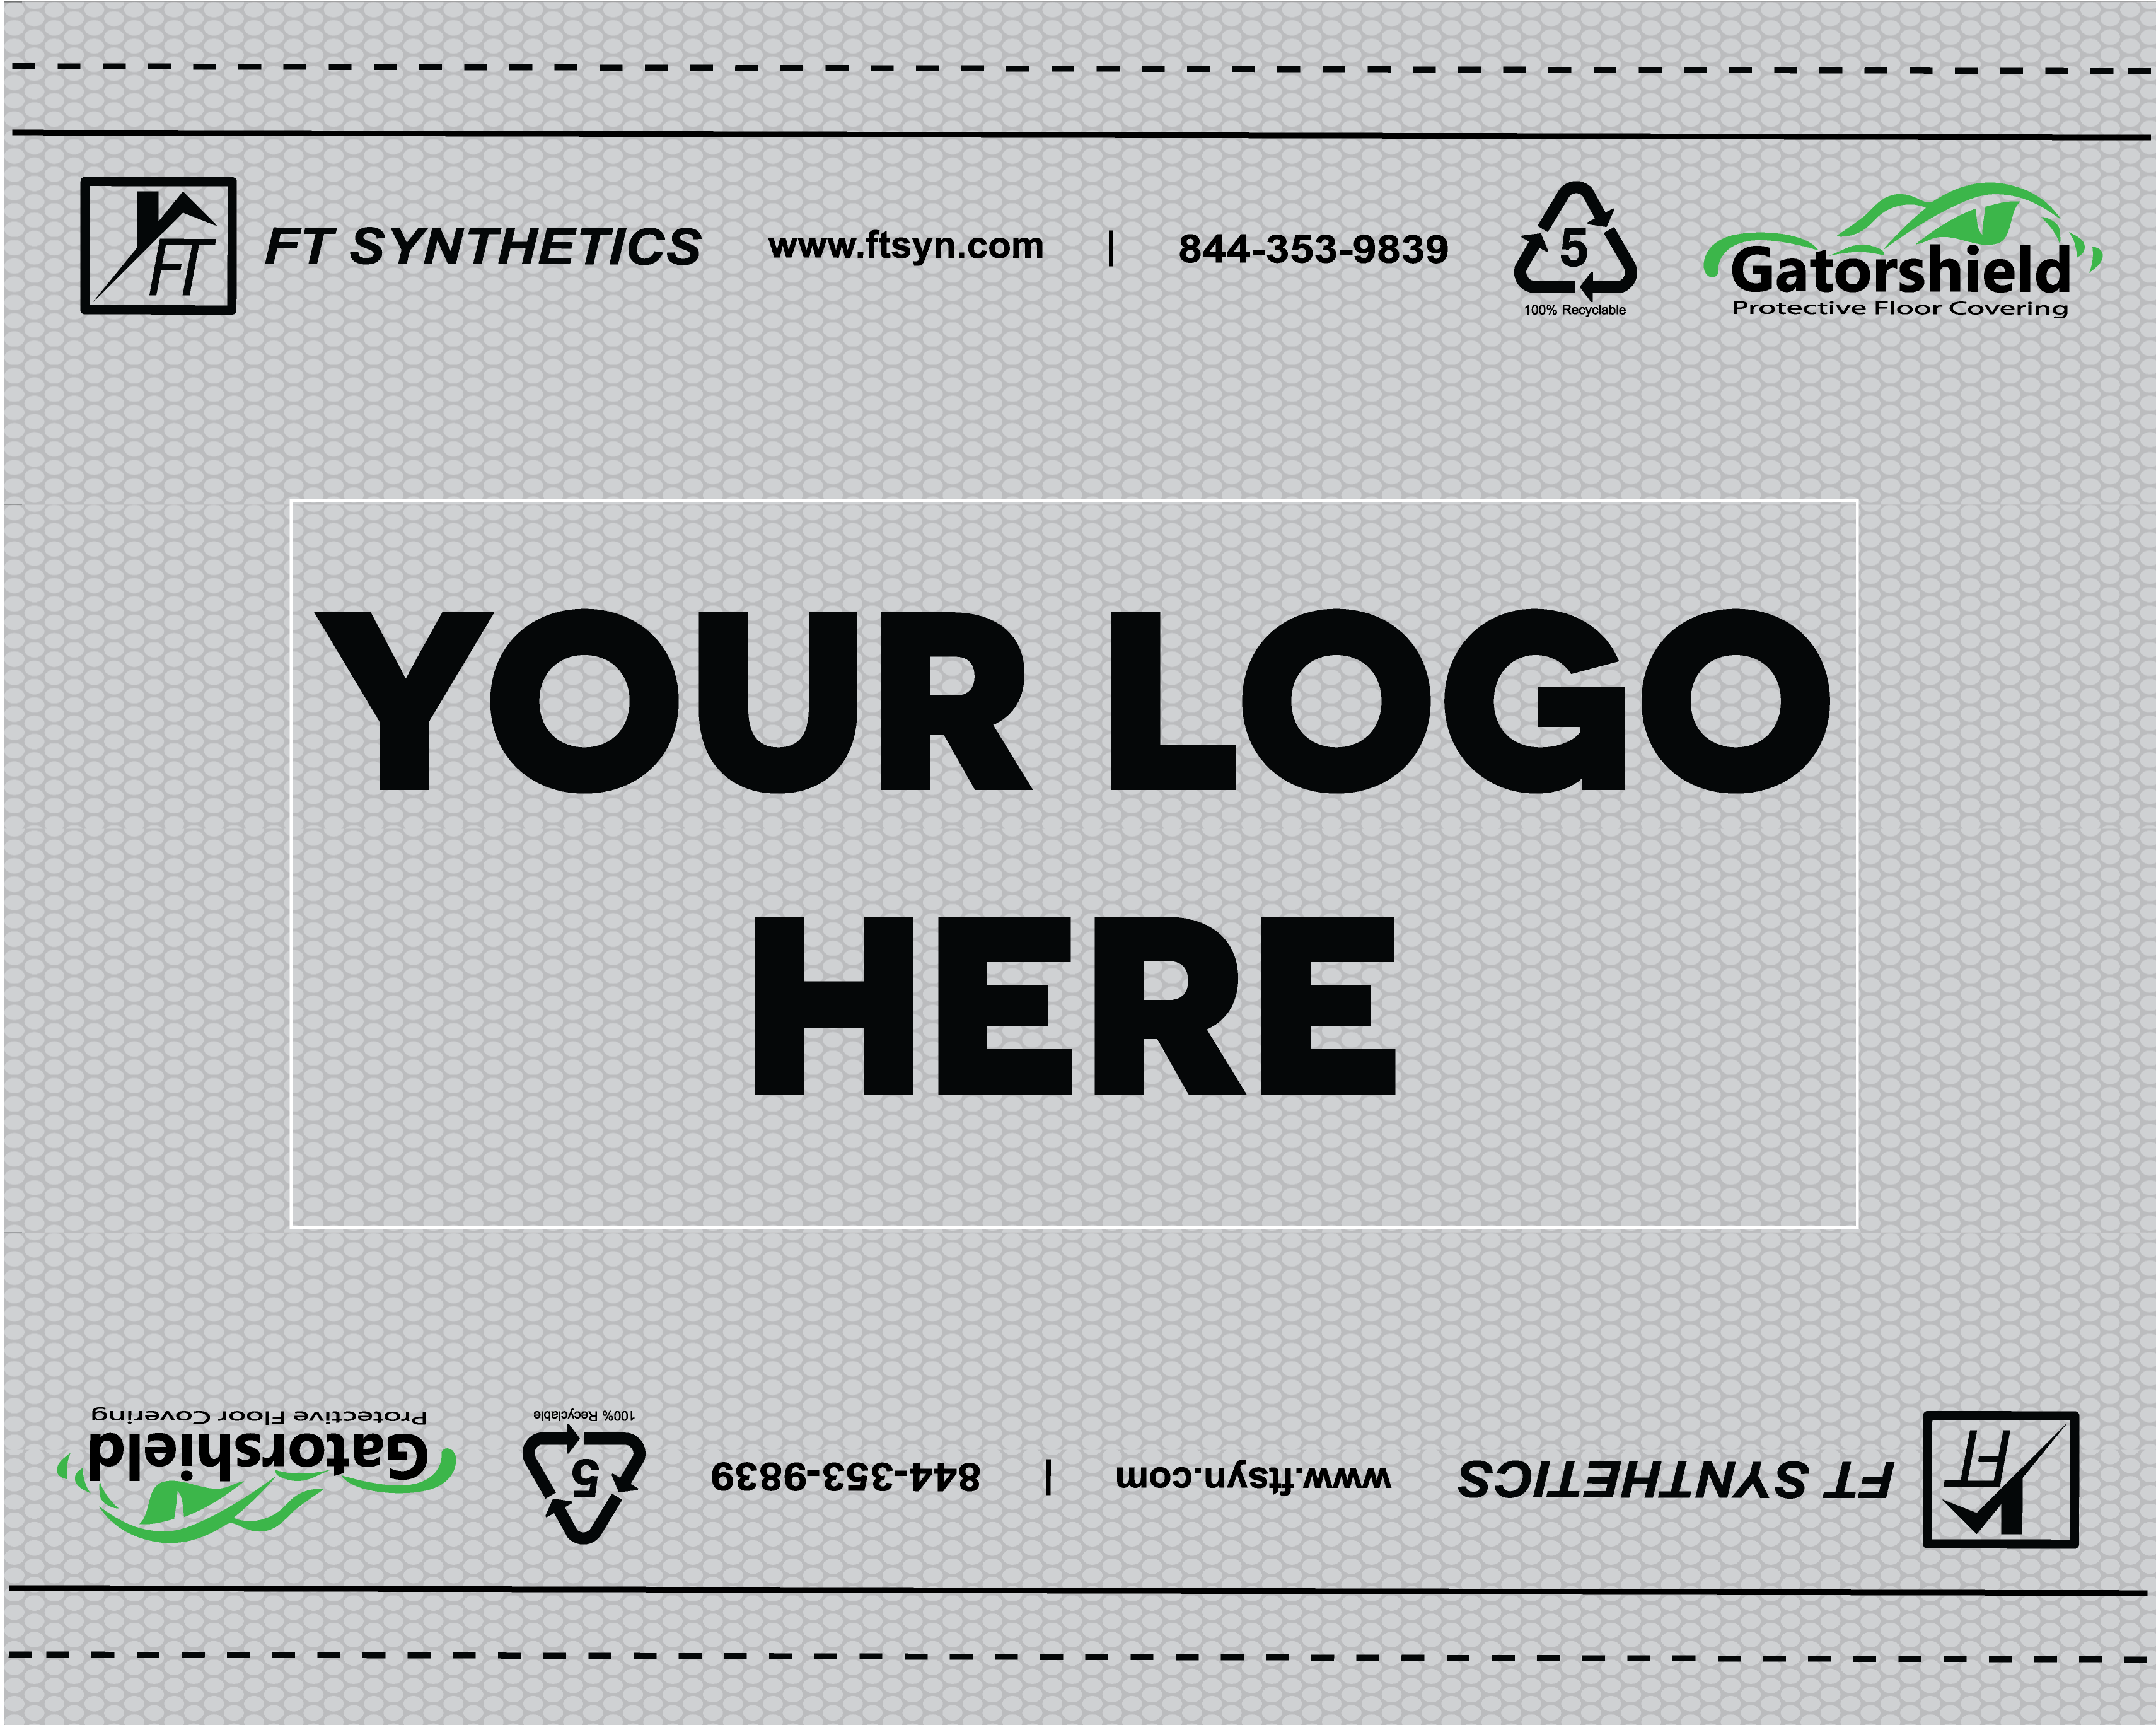 Gatorshield-your-logo-here-template